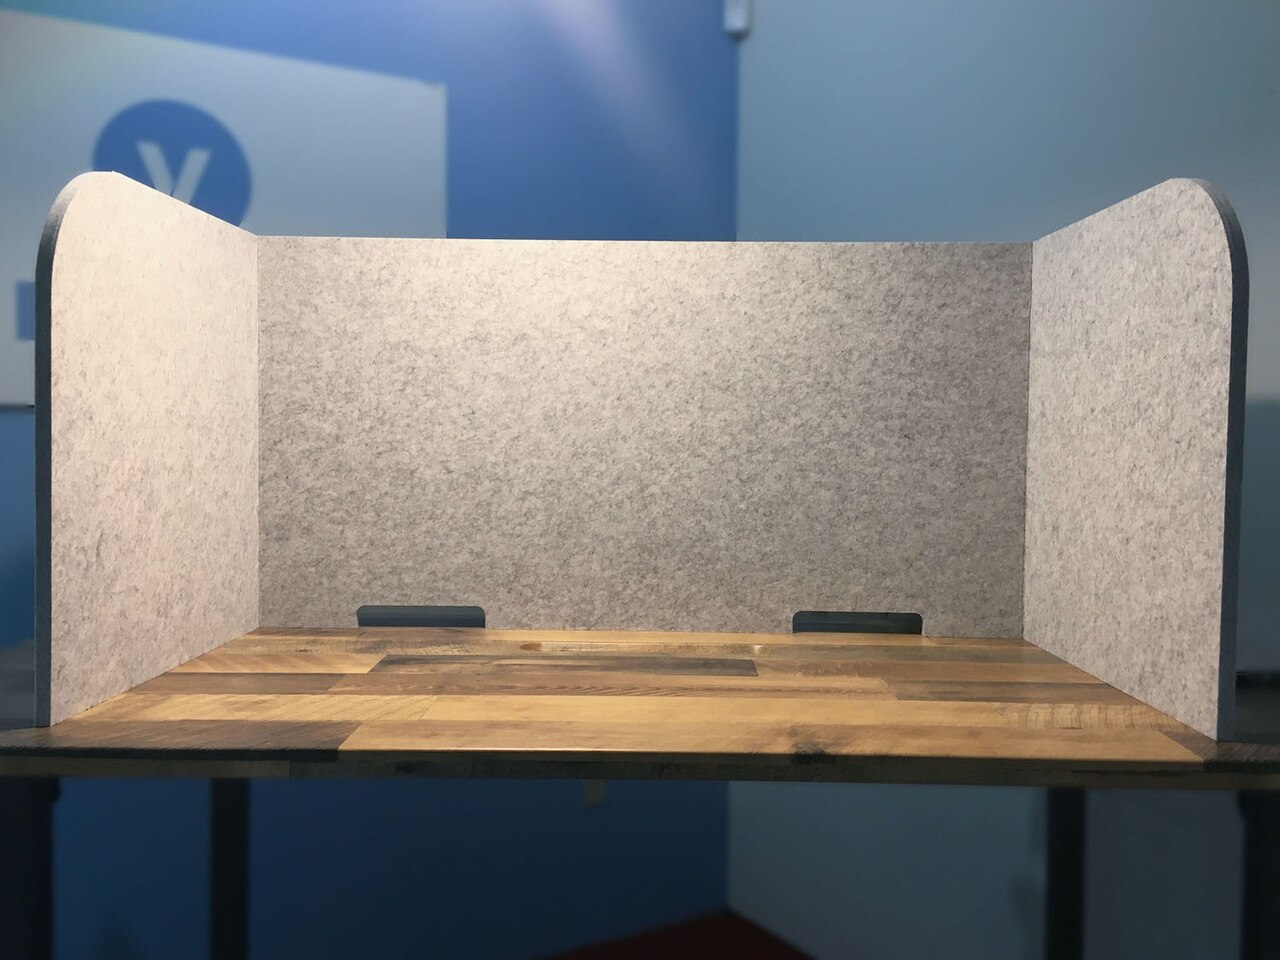 New Product Feature: Introducing the SoundSorb Tri-Fold Desktop Panel